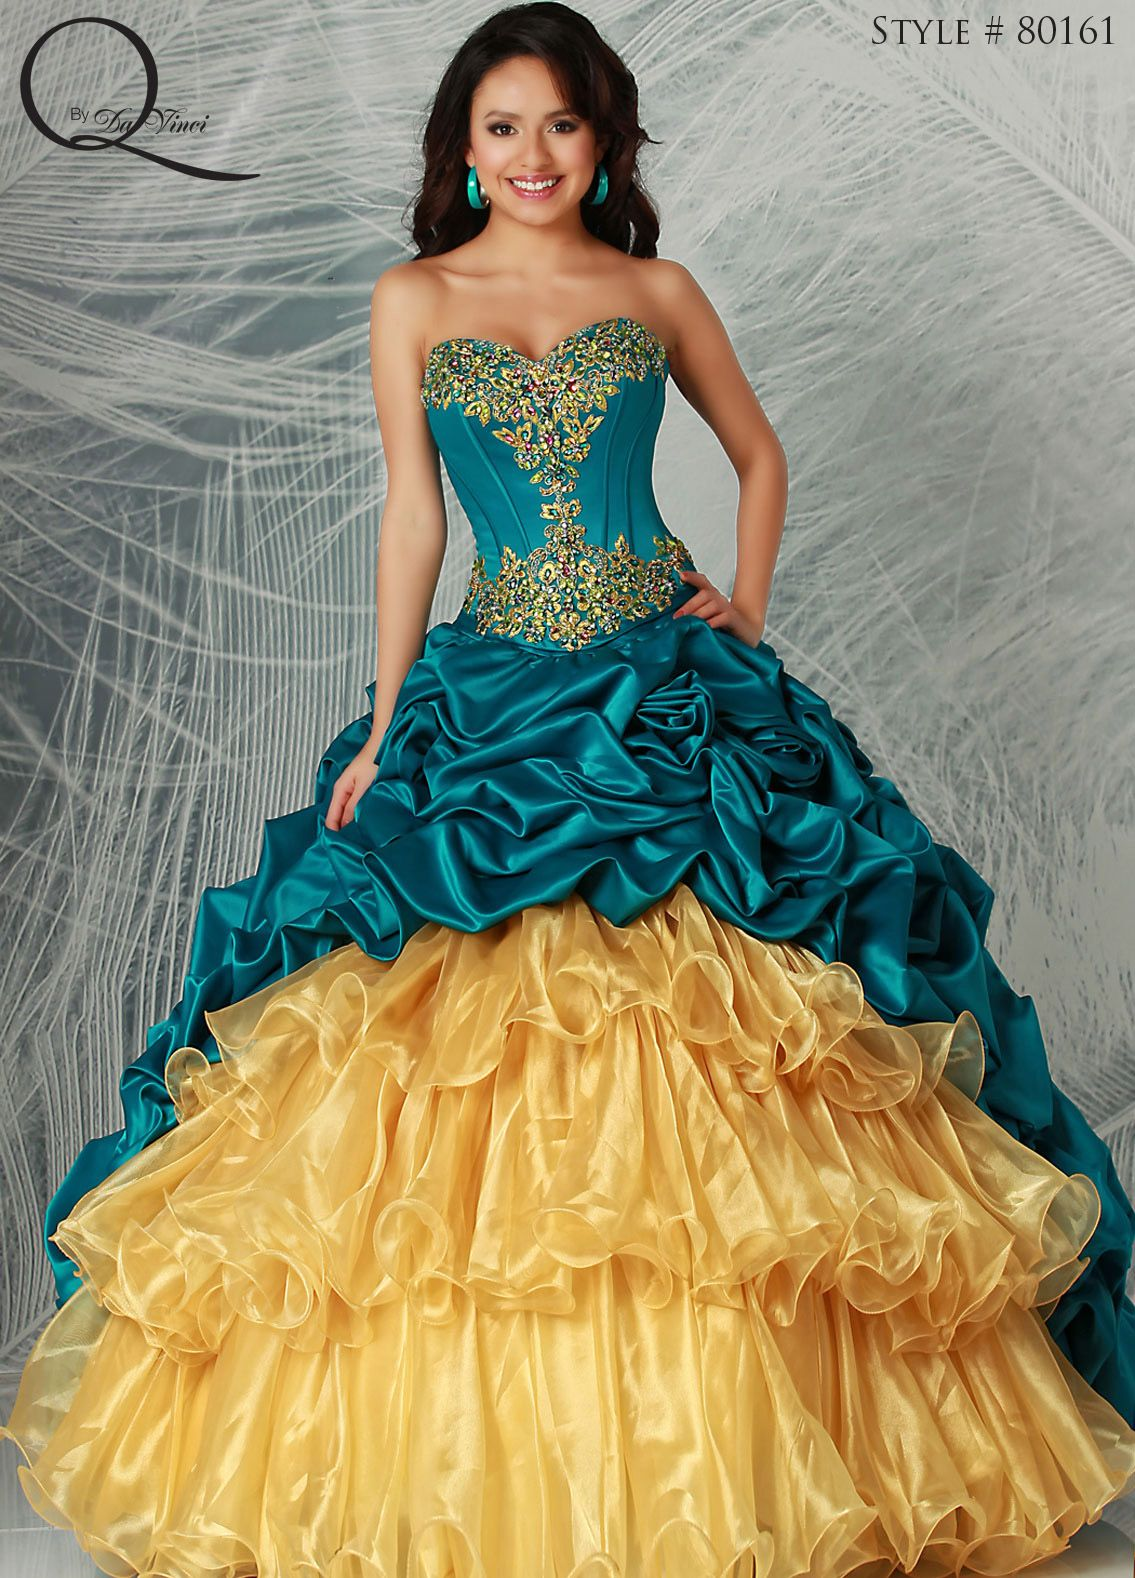 63fd4e5251 Teal blue gold Quinceanera dress ~ Quinceanera dresses from Q by Davinci   quince XV años. Available in Teal Gold